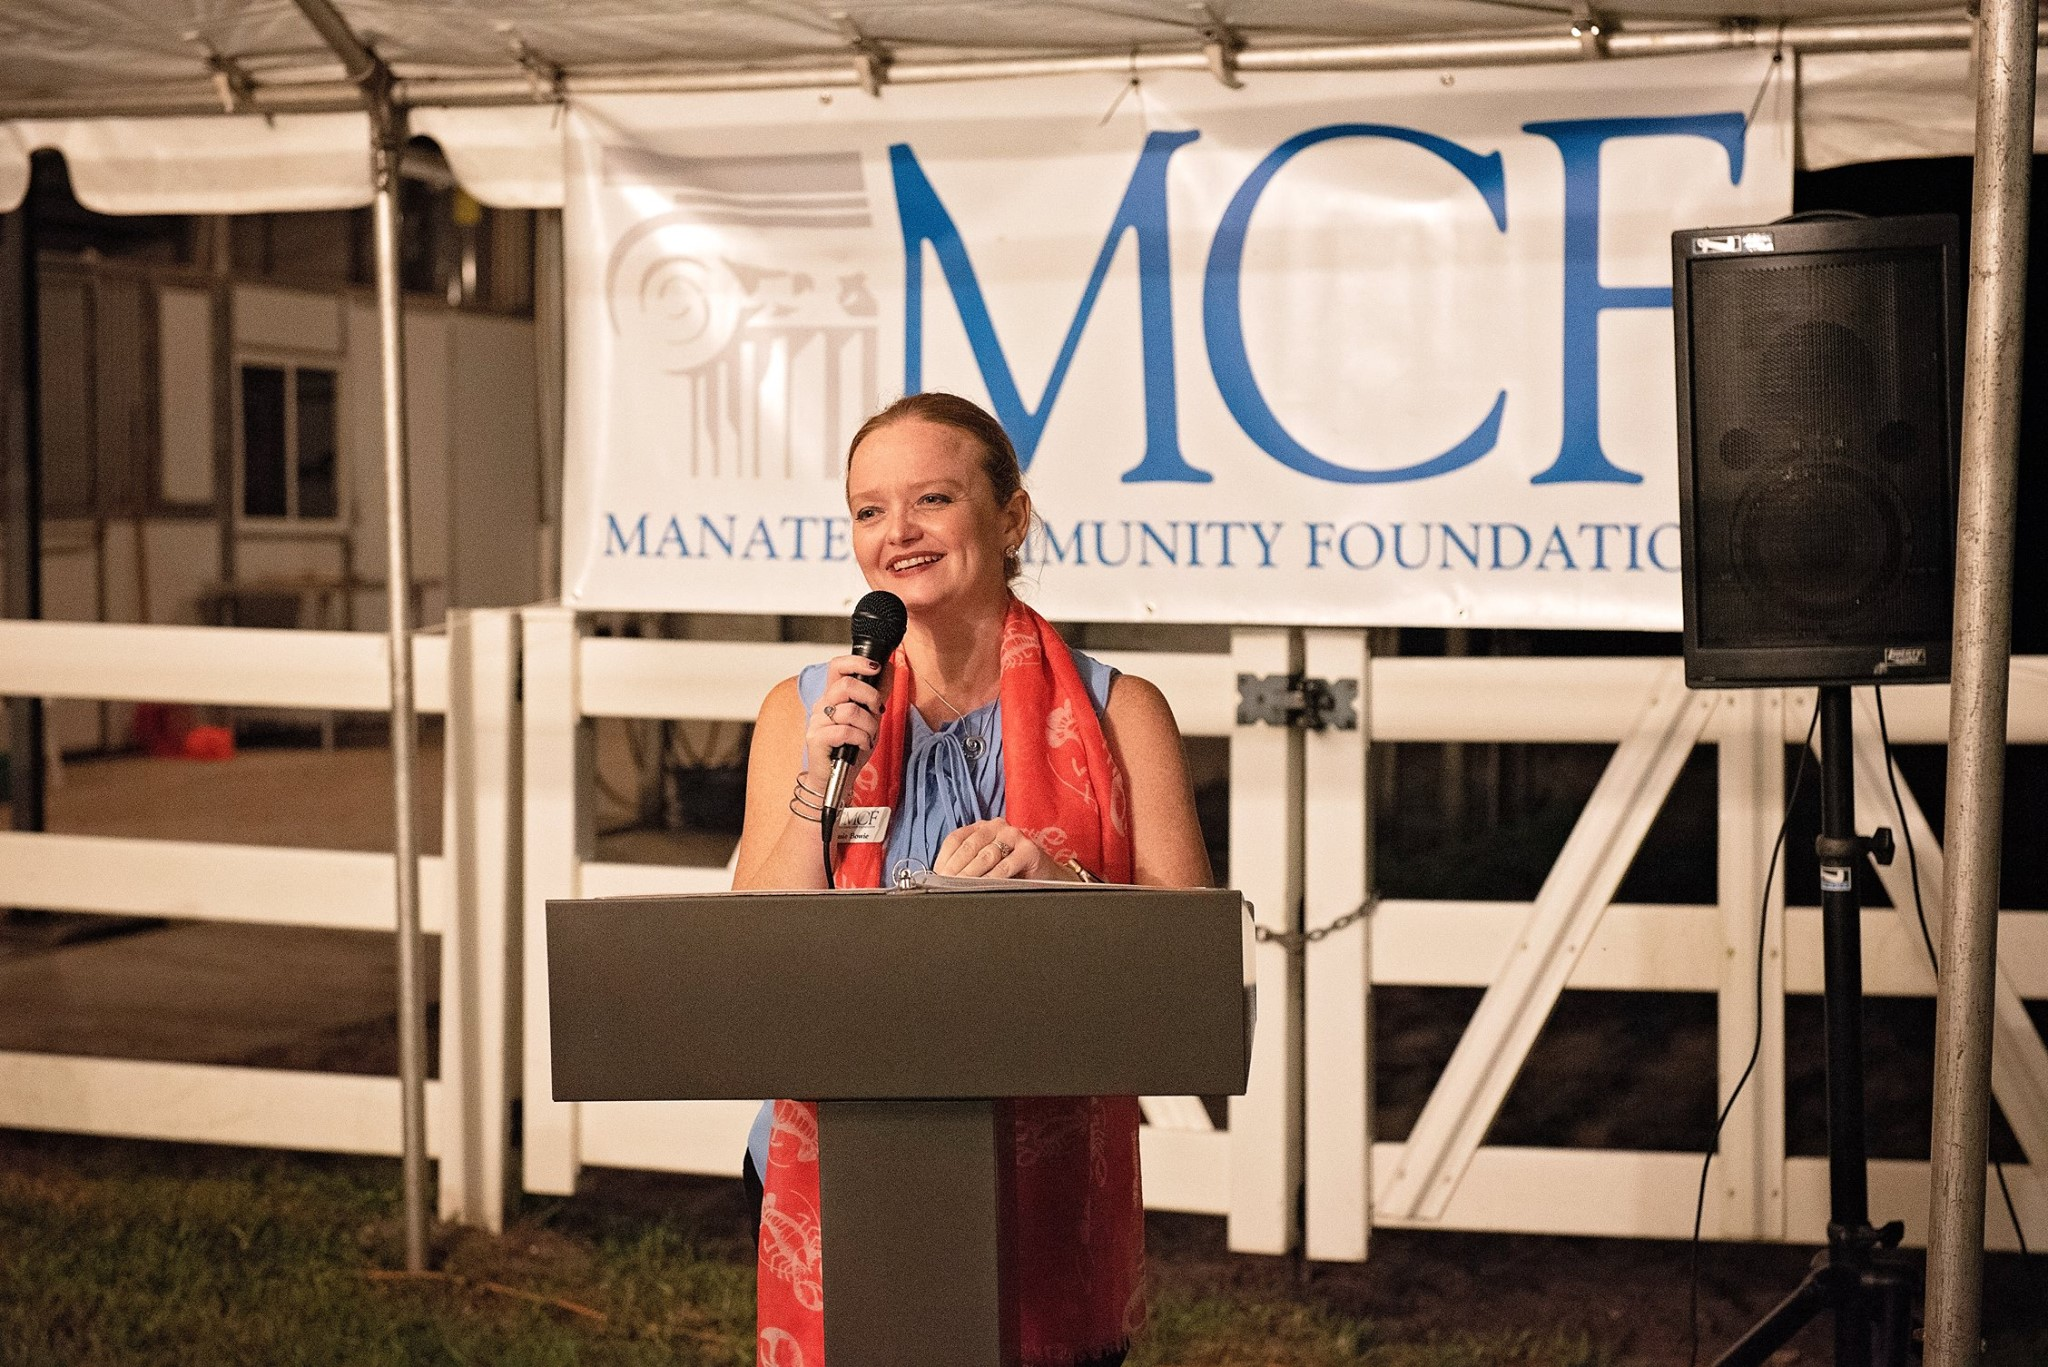 Susie Bowie, Manatee Community Foundation